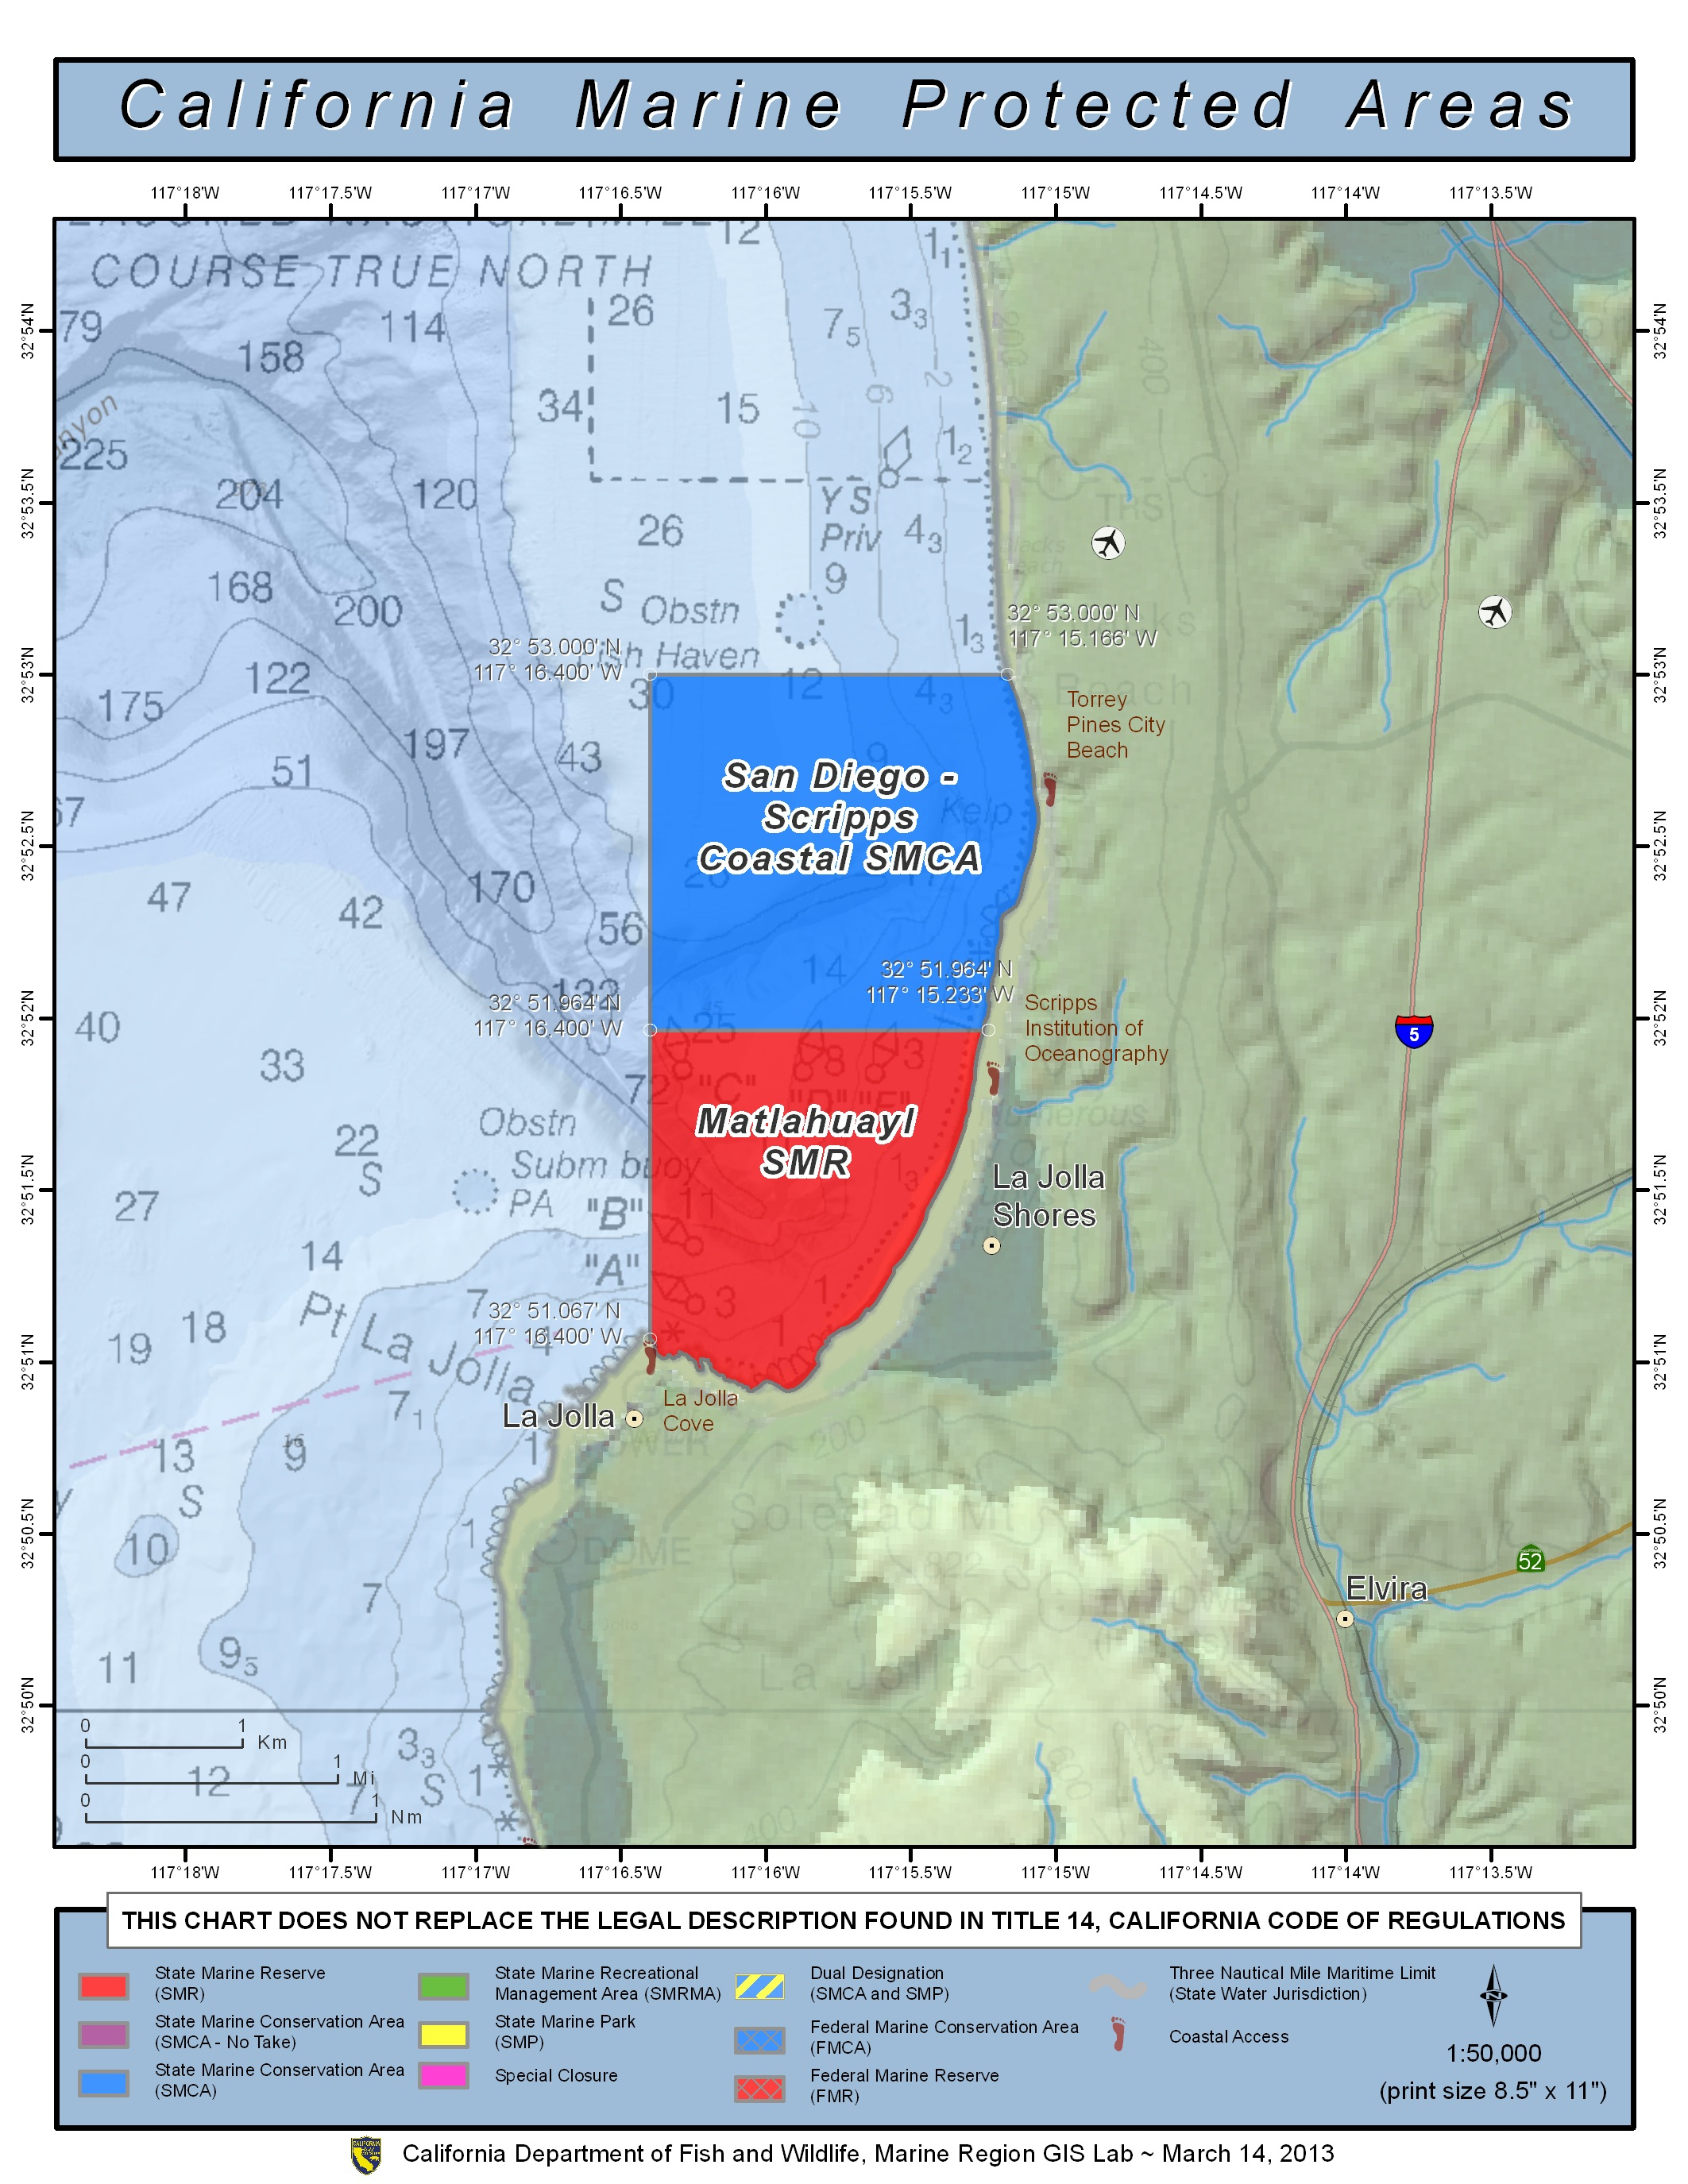 Filehandler Map With Zone Southern California Surf Map - Klipy - California Marine Protected Areas Map